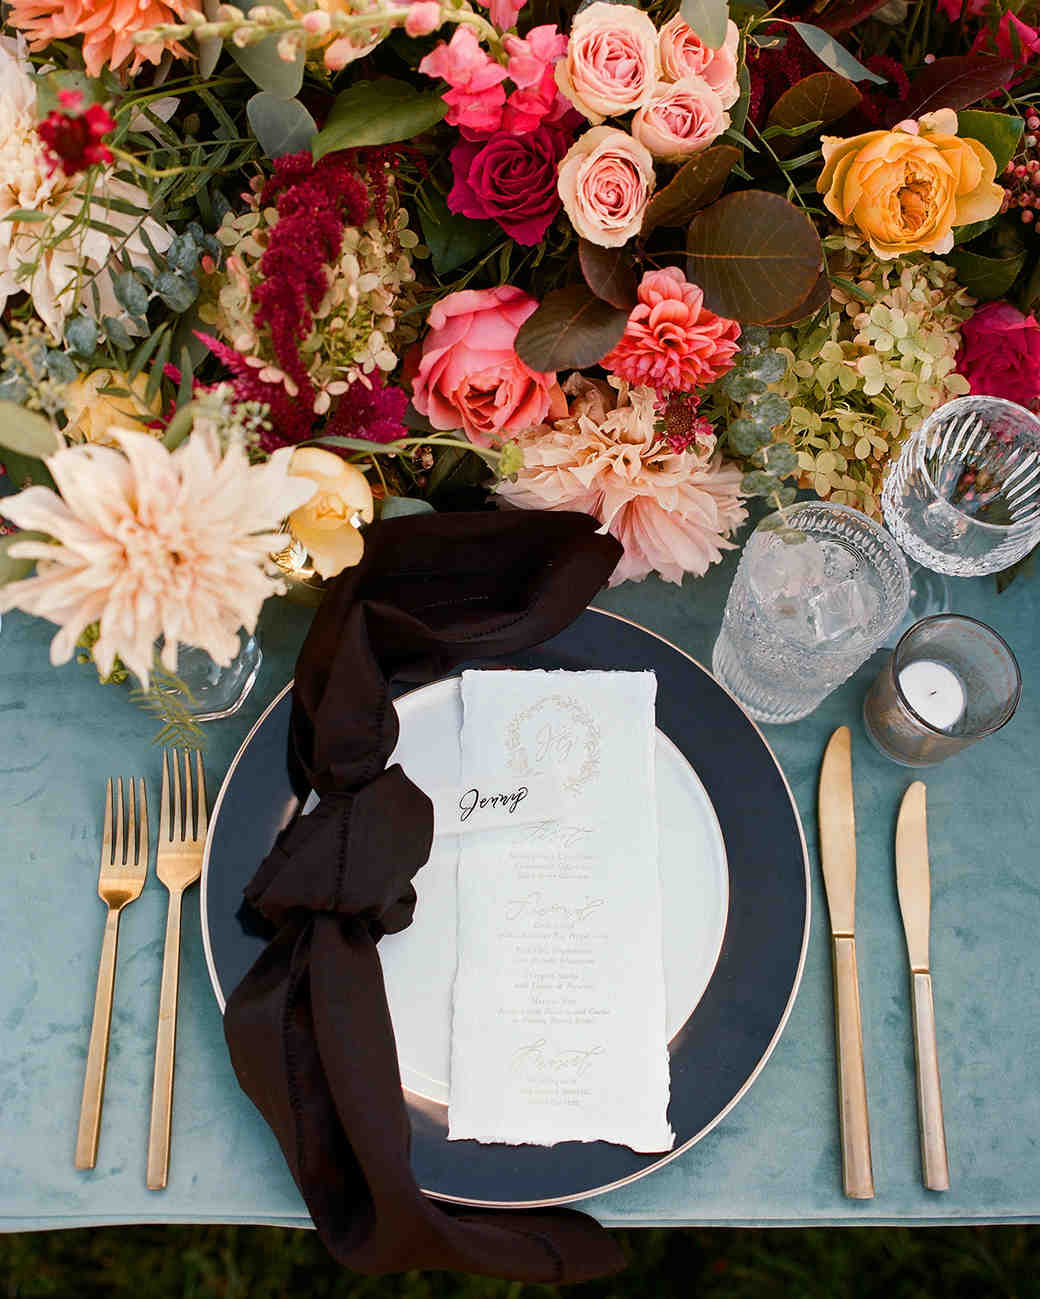 jen geoff wedding place setting and centerpiece